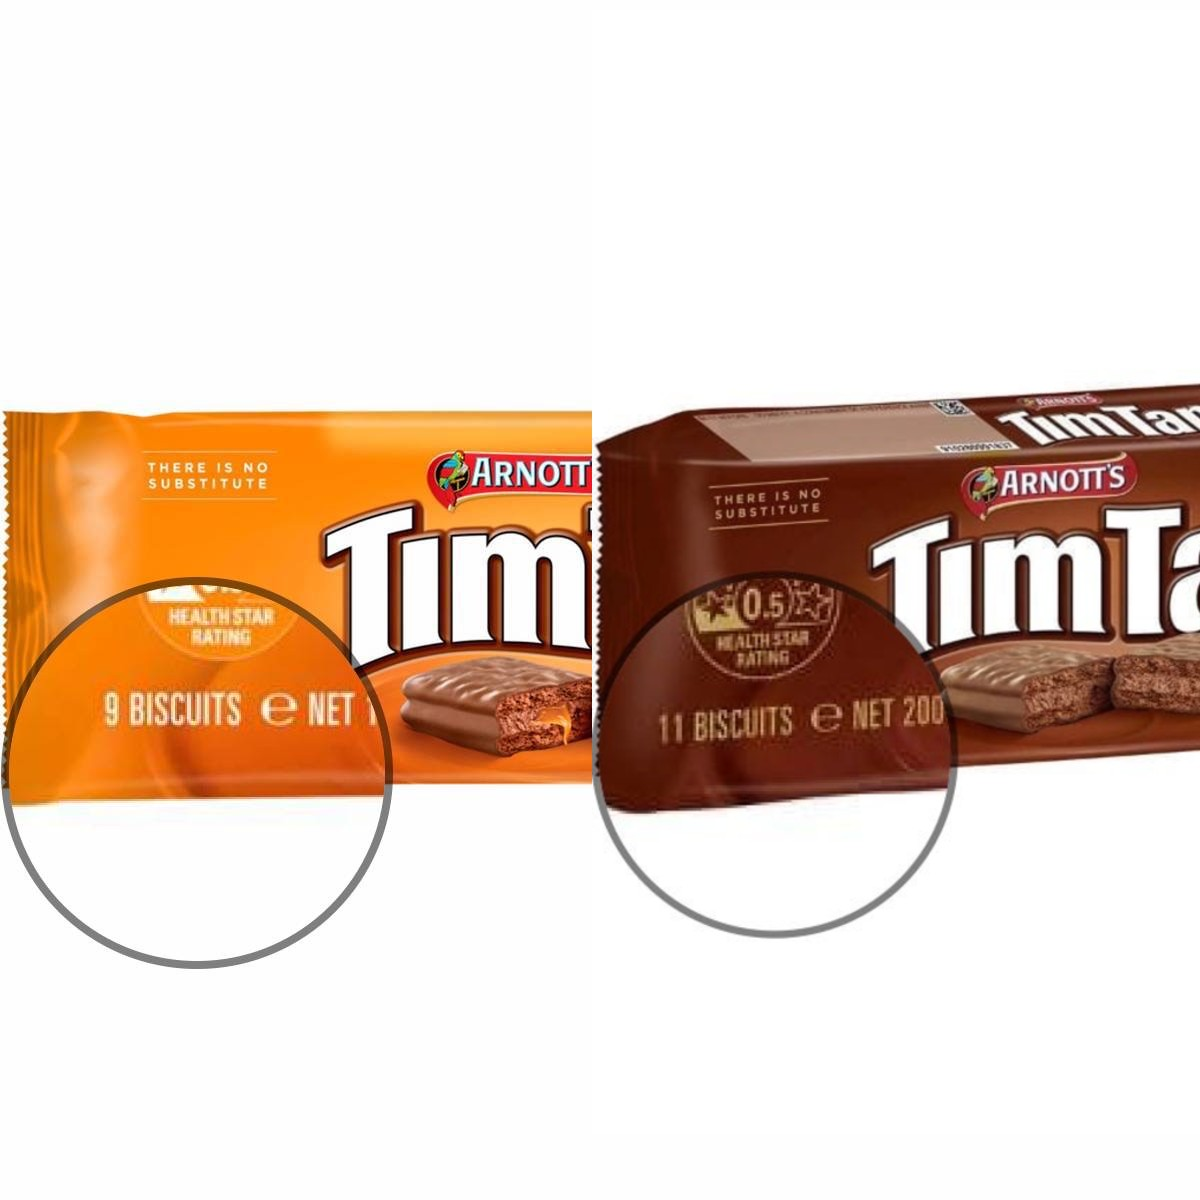 Shock TimTam discovery